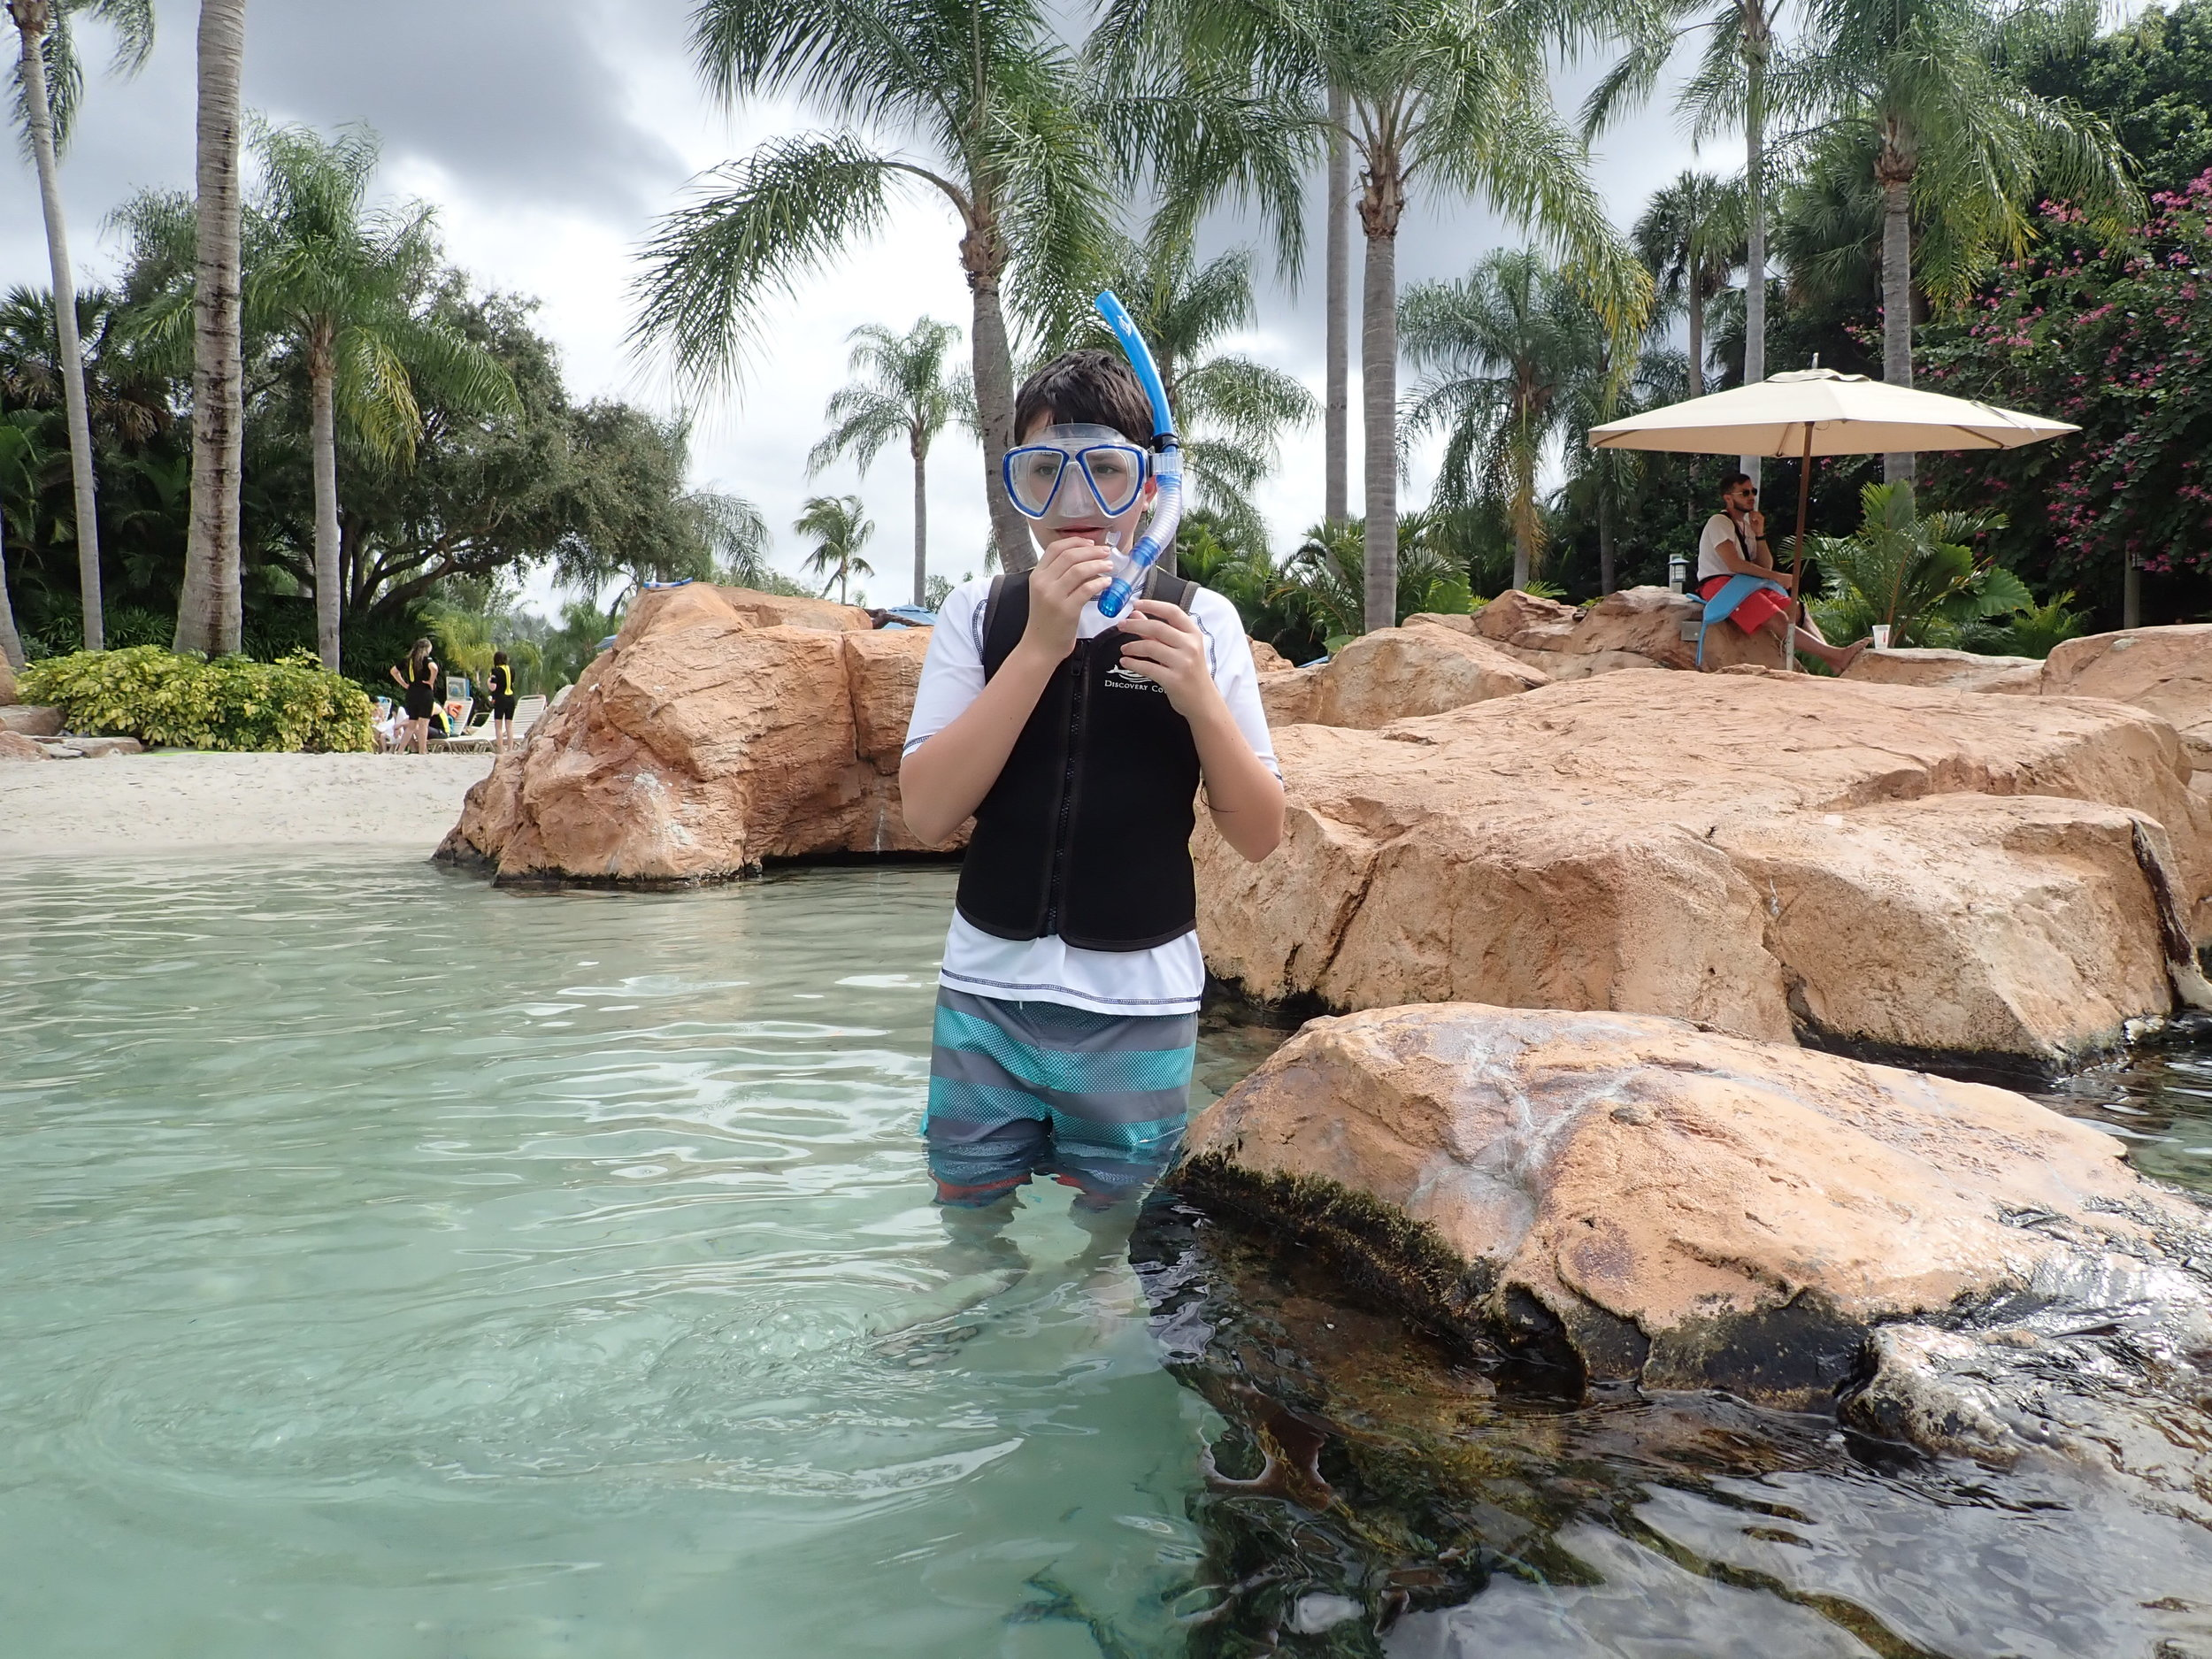 Not quite ready to try snorkeling